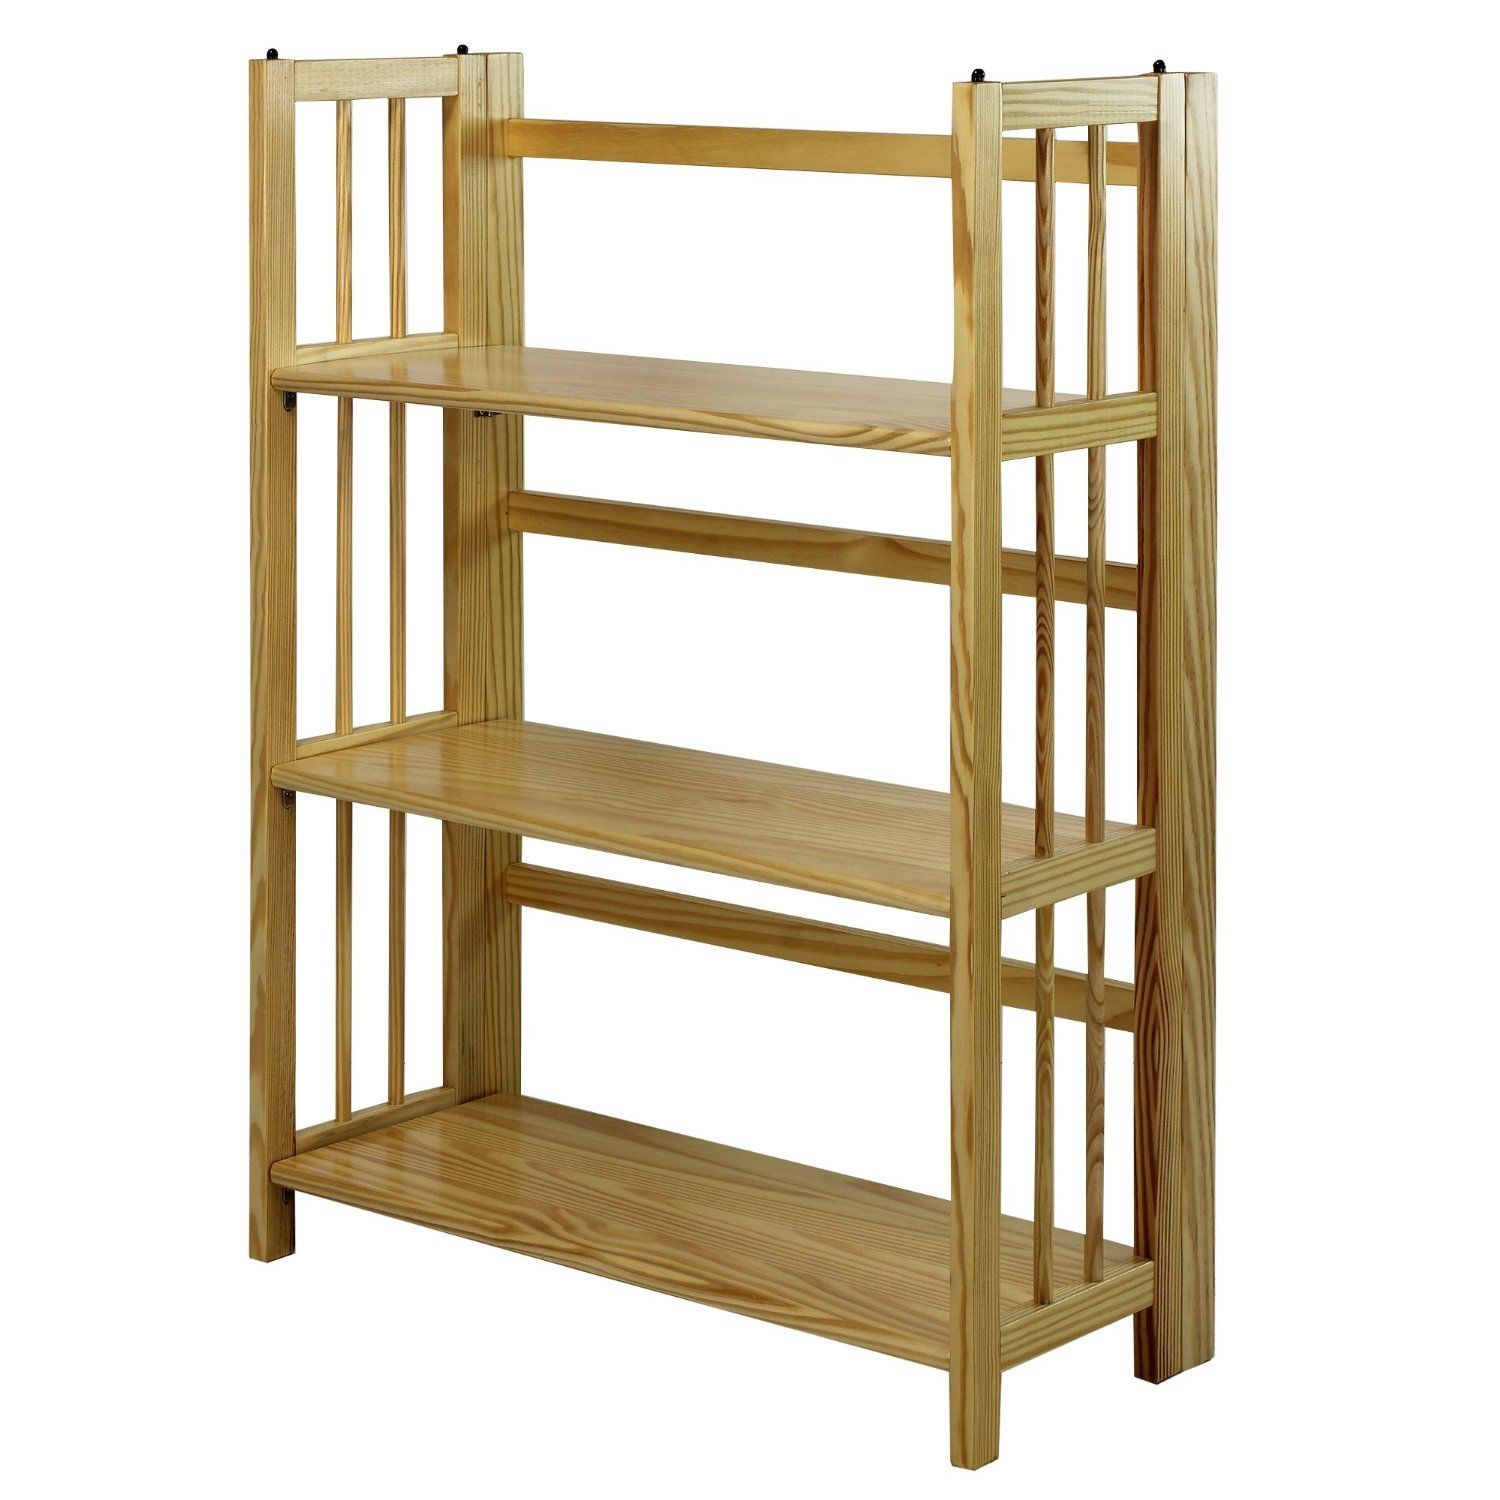 is wood folding shows in handy that stackable come craft shelving shelf for portable pin might bookshelf collapsible this a